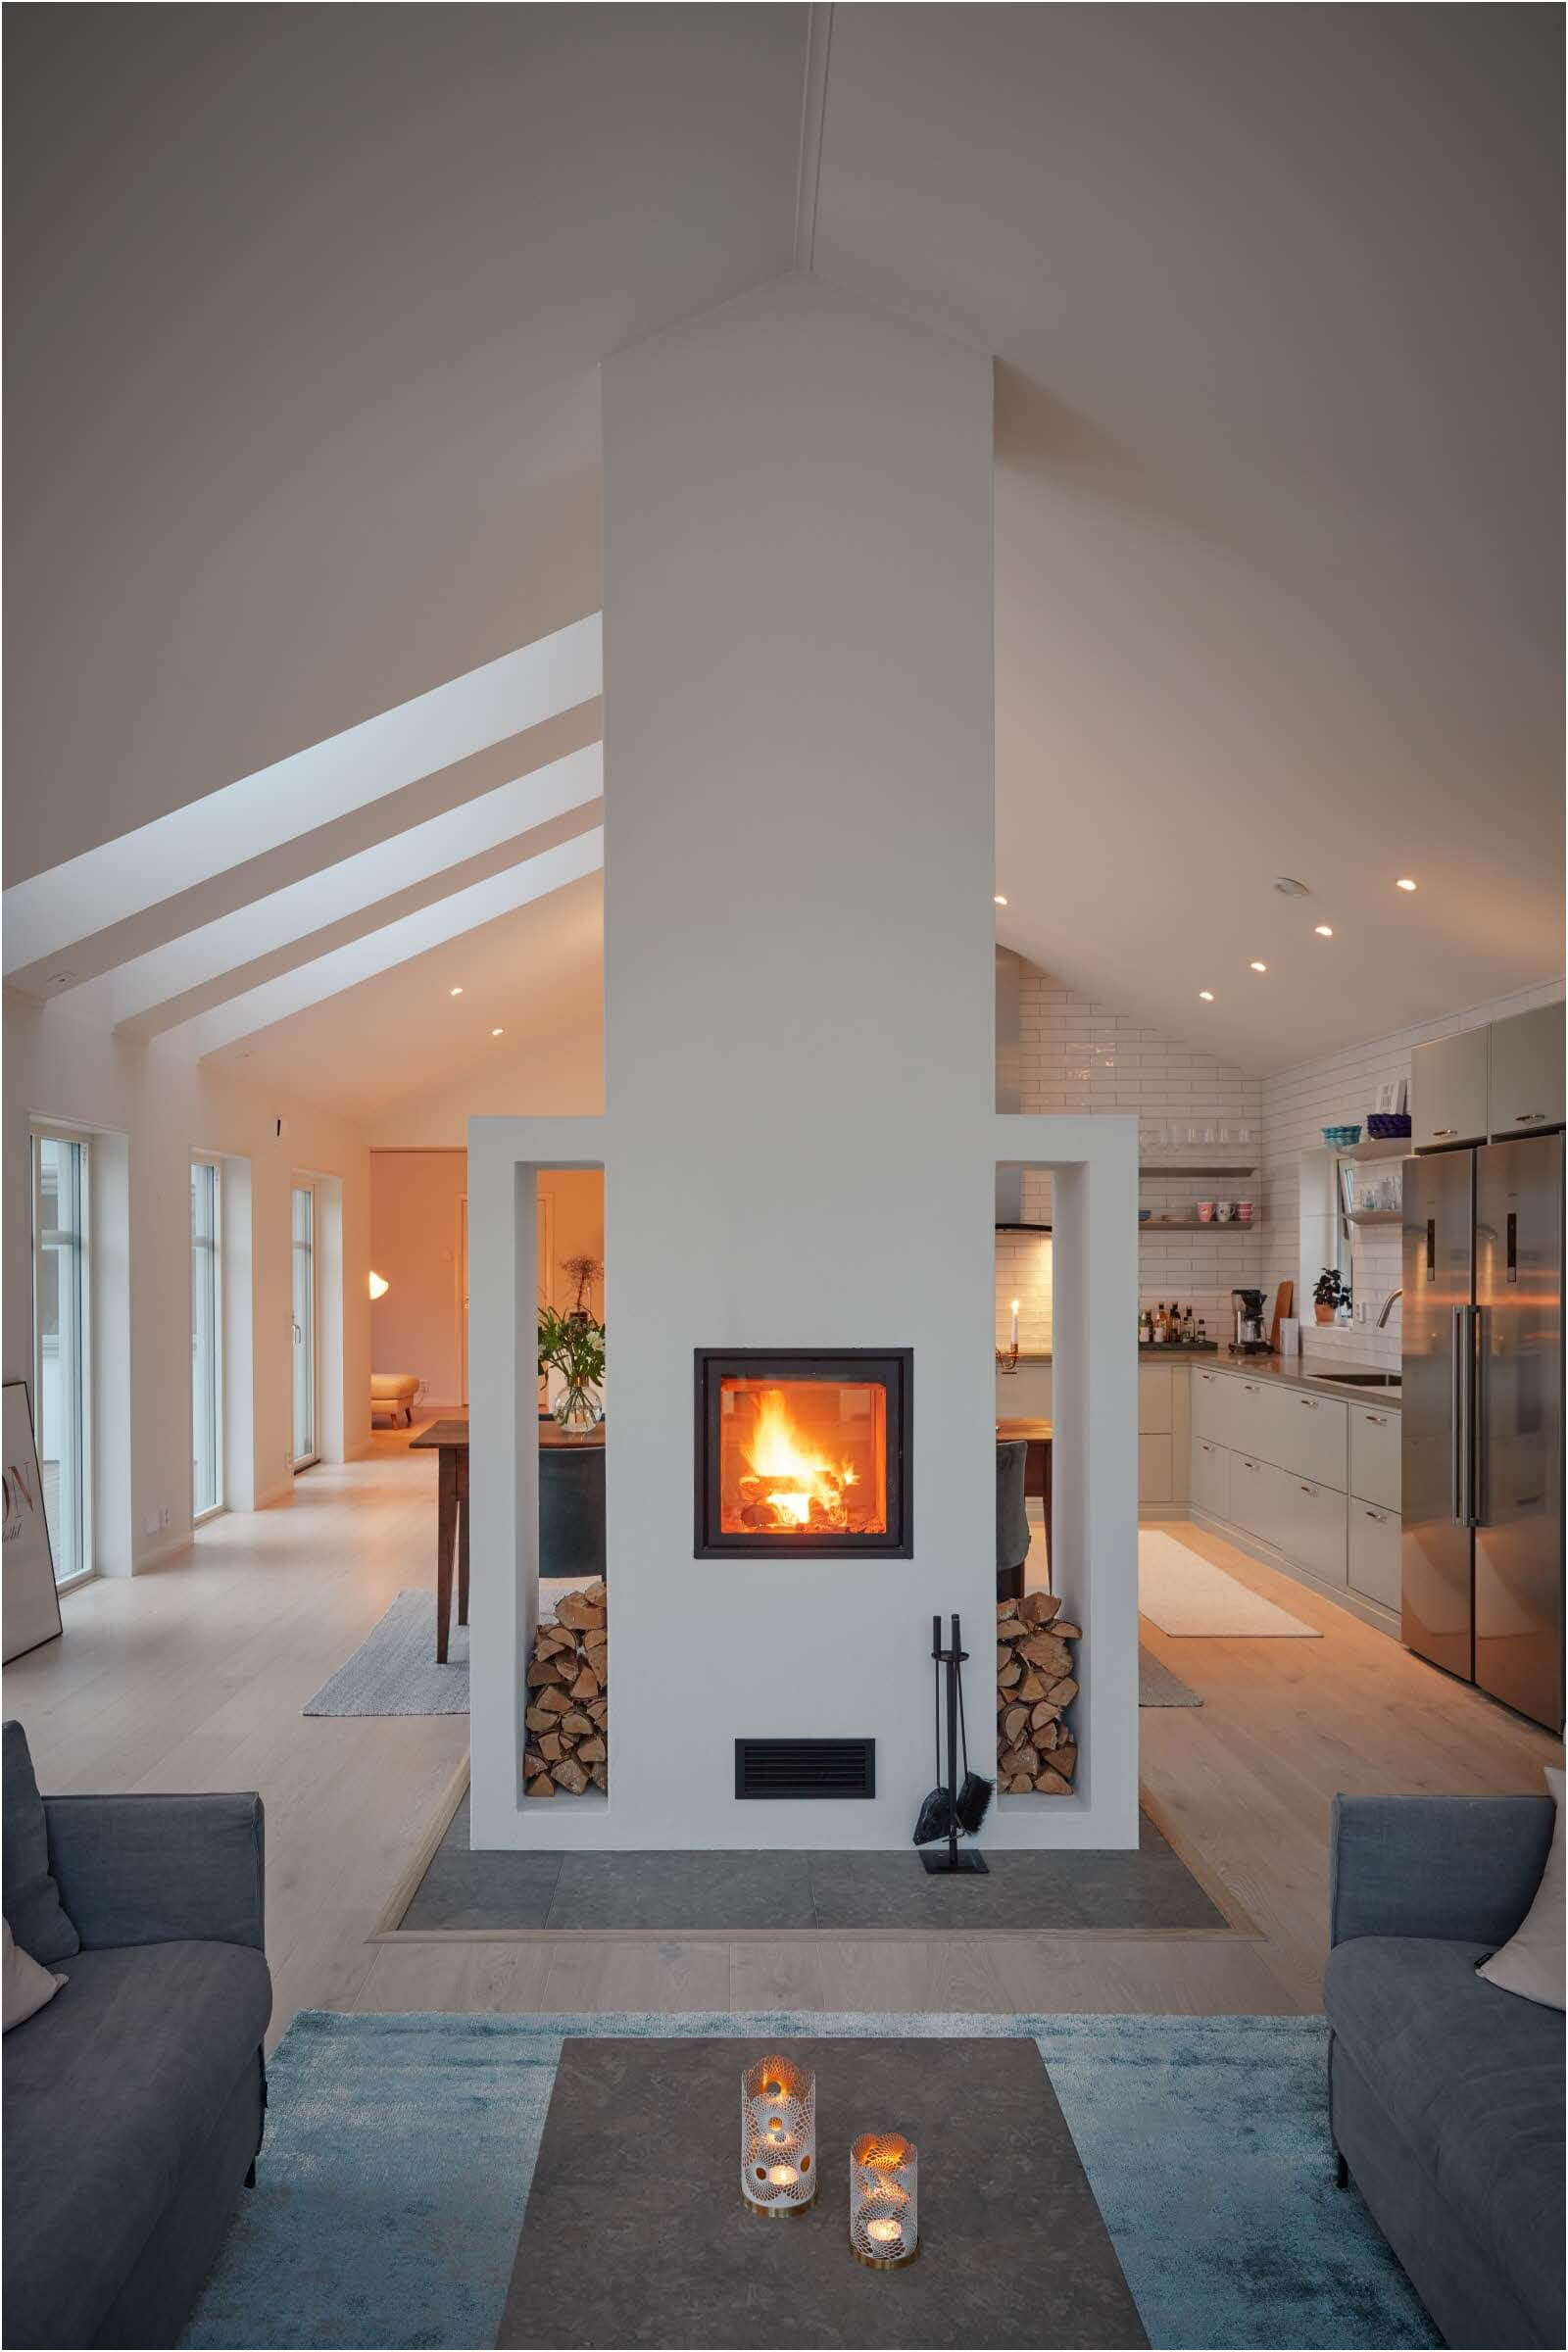 Unique Decorative Ideas for Fireplace